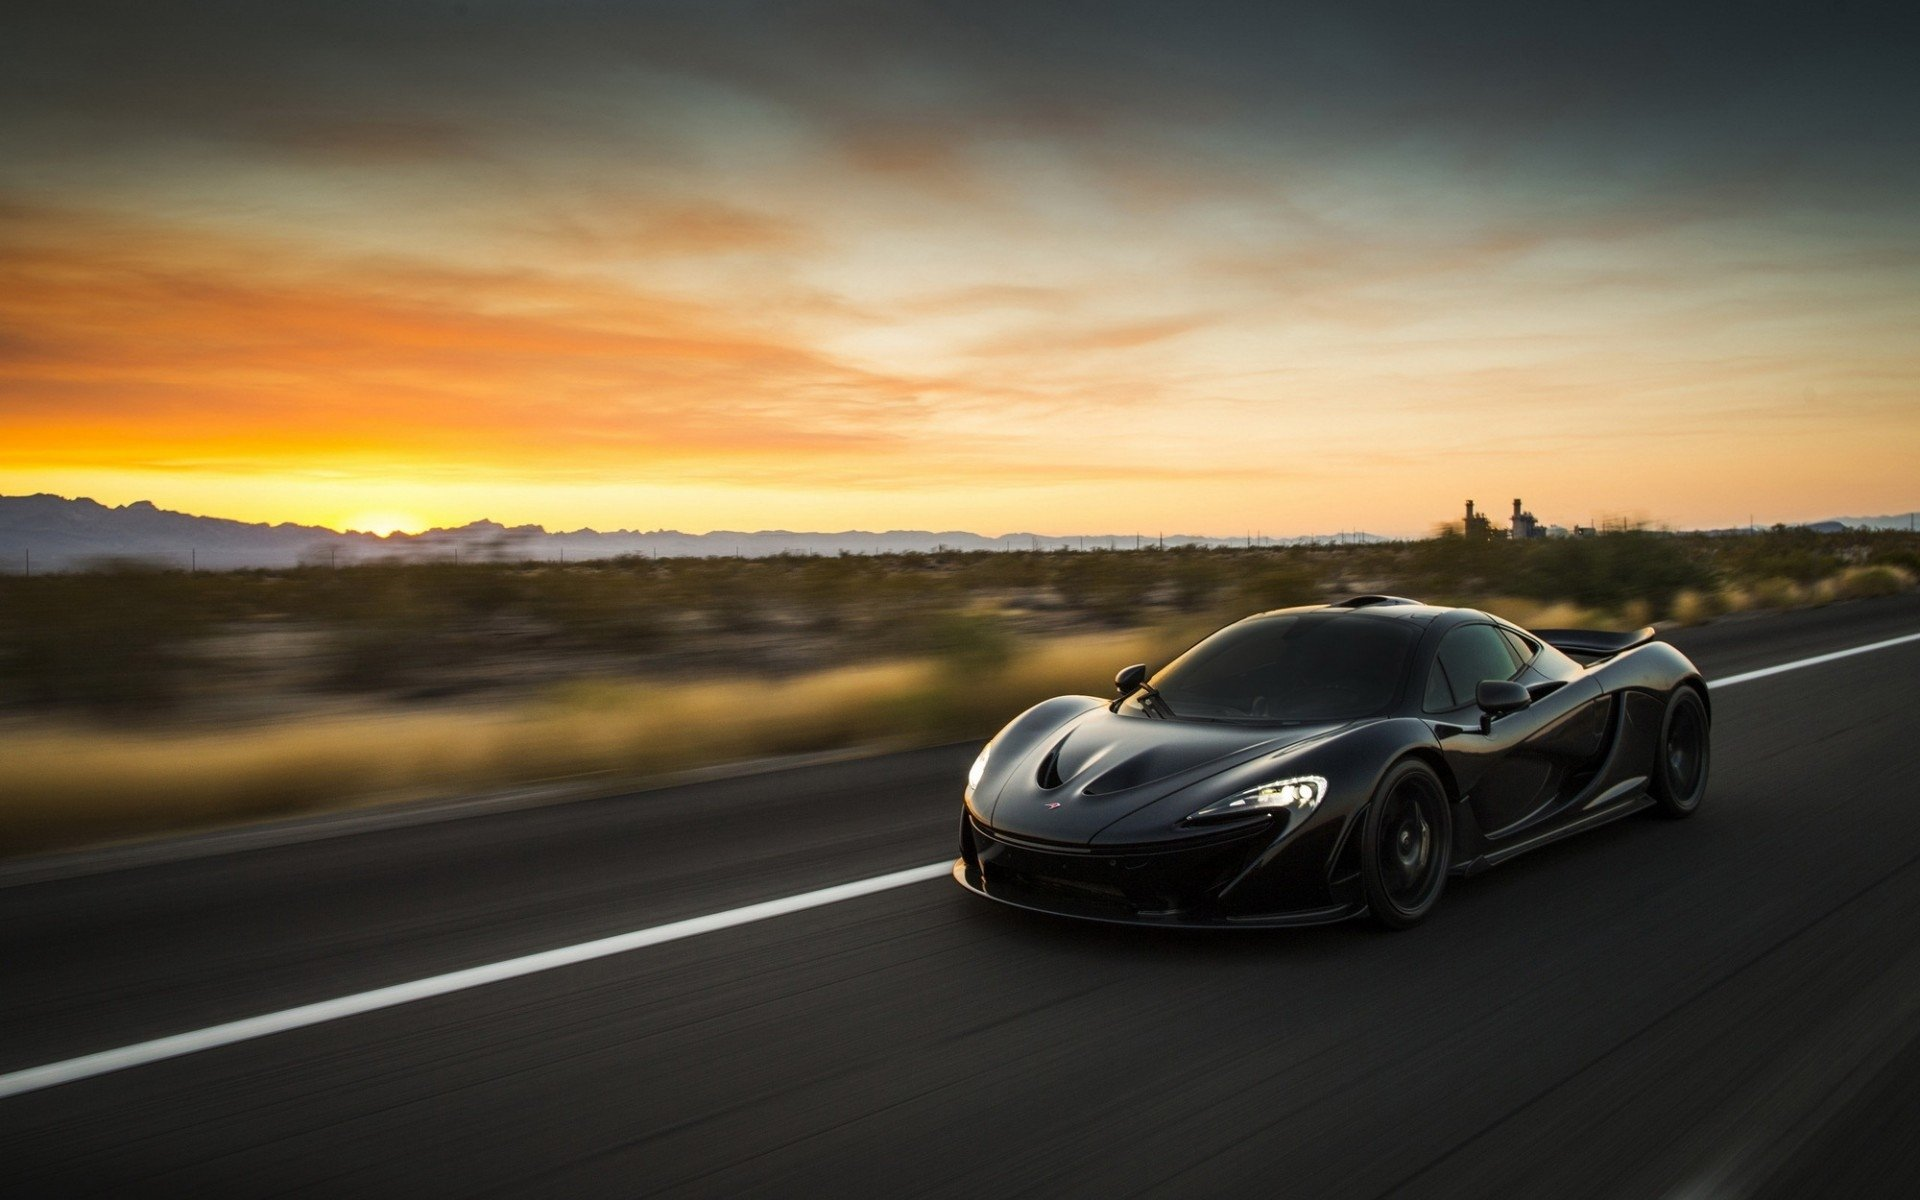 127 McLaren P1 HD Wallpapers | Backgrounds   Wallpaper Abyss